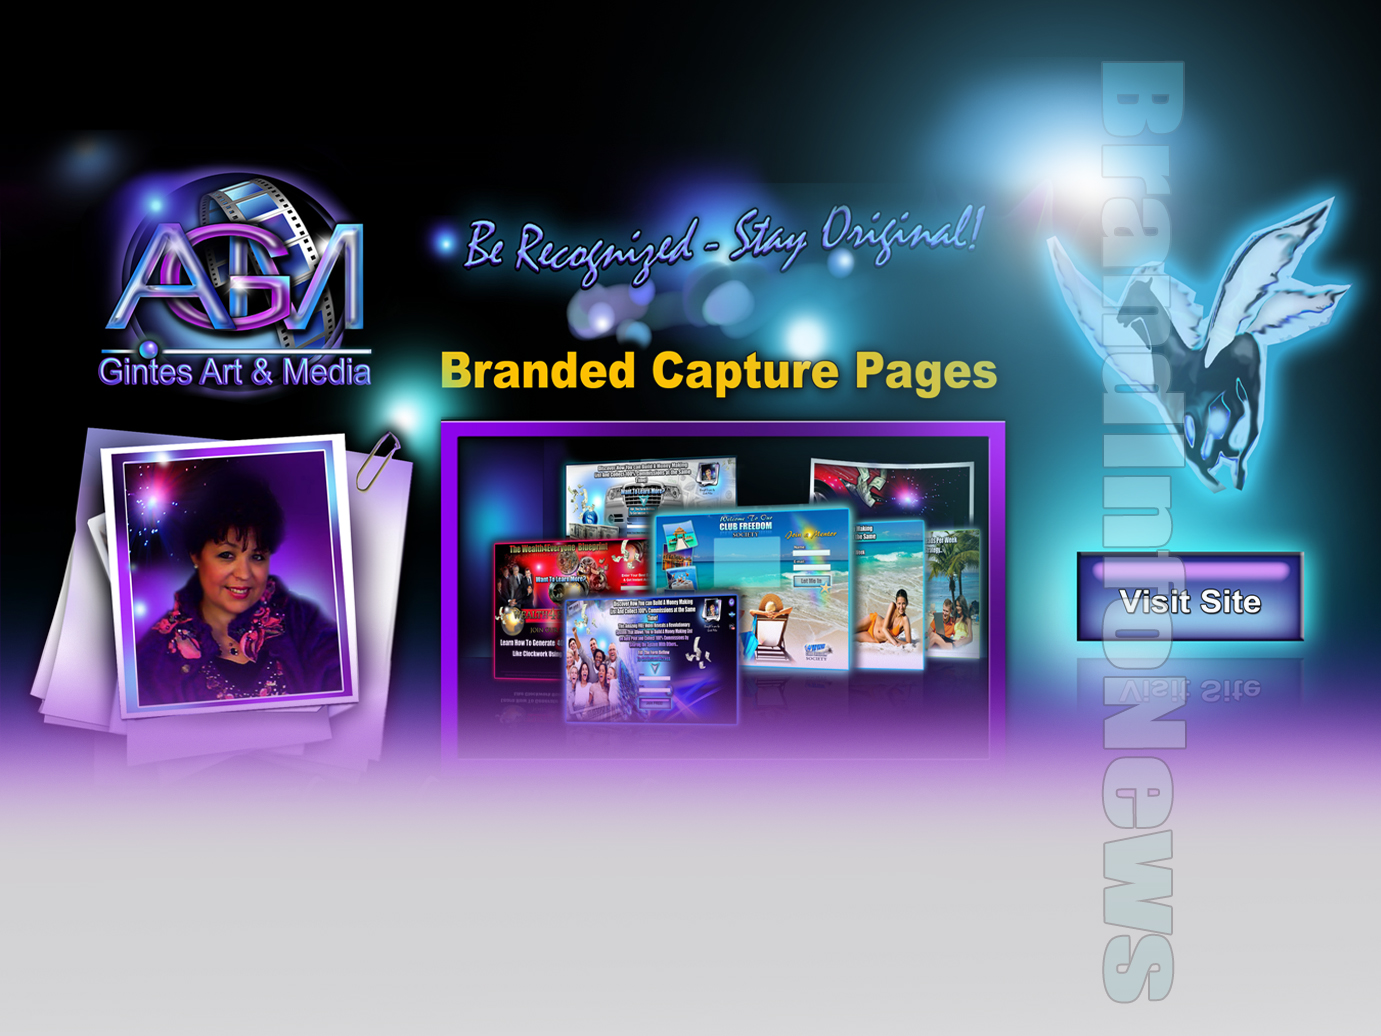 Branded capture pages